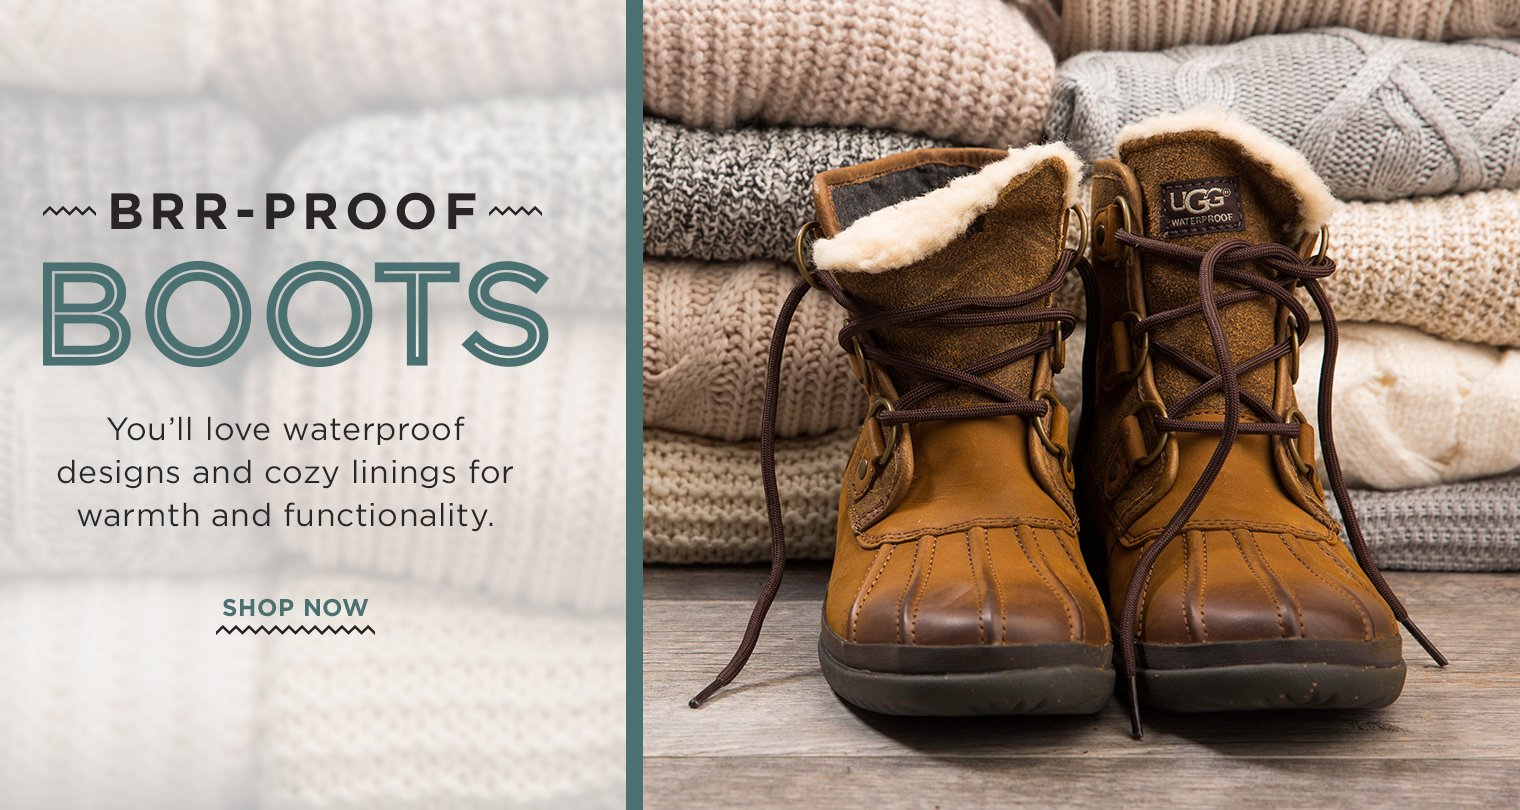 Brr-Proof Boots. You'll love waterproof designs and cozy linings for warmth and functionality. Shop Now.